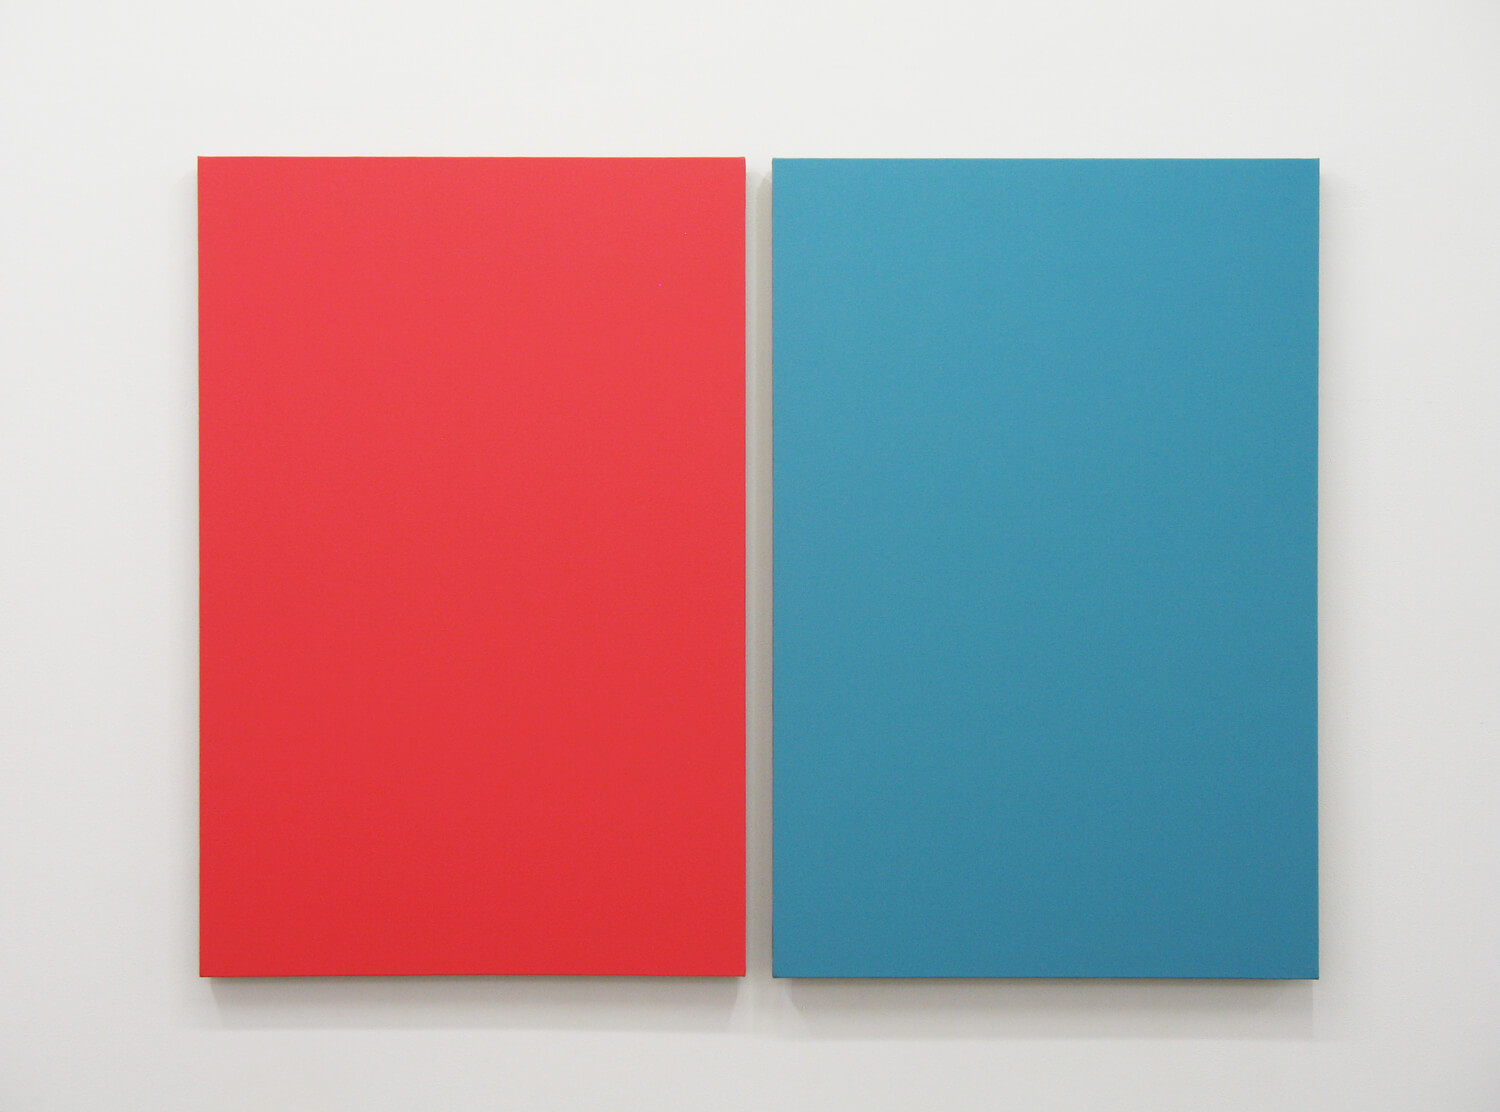 Text No. 791 / oil, wax on linen, 910 x 1242 x 40 mm, 2011 (overall)